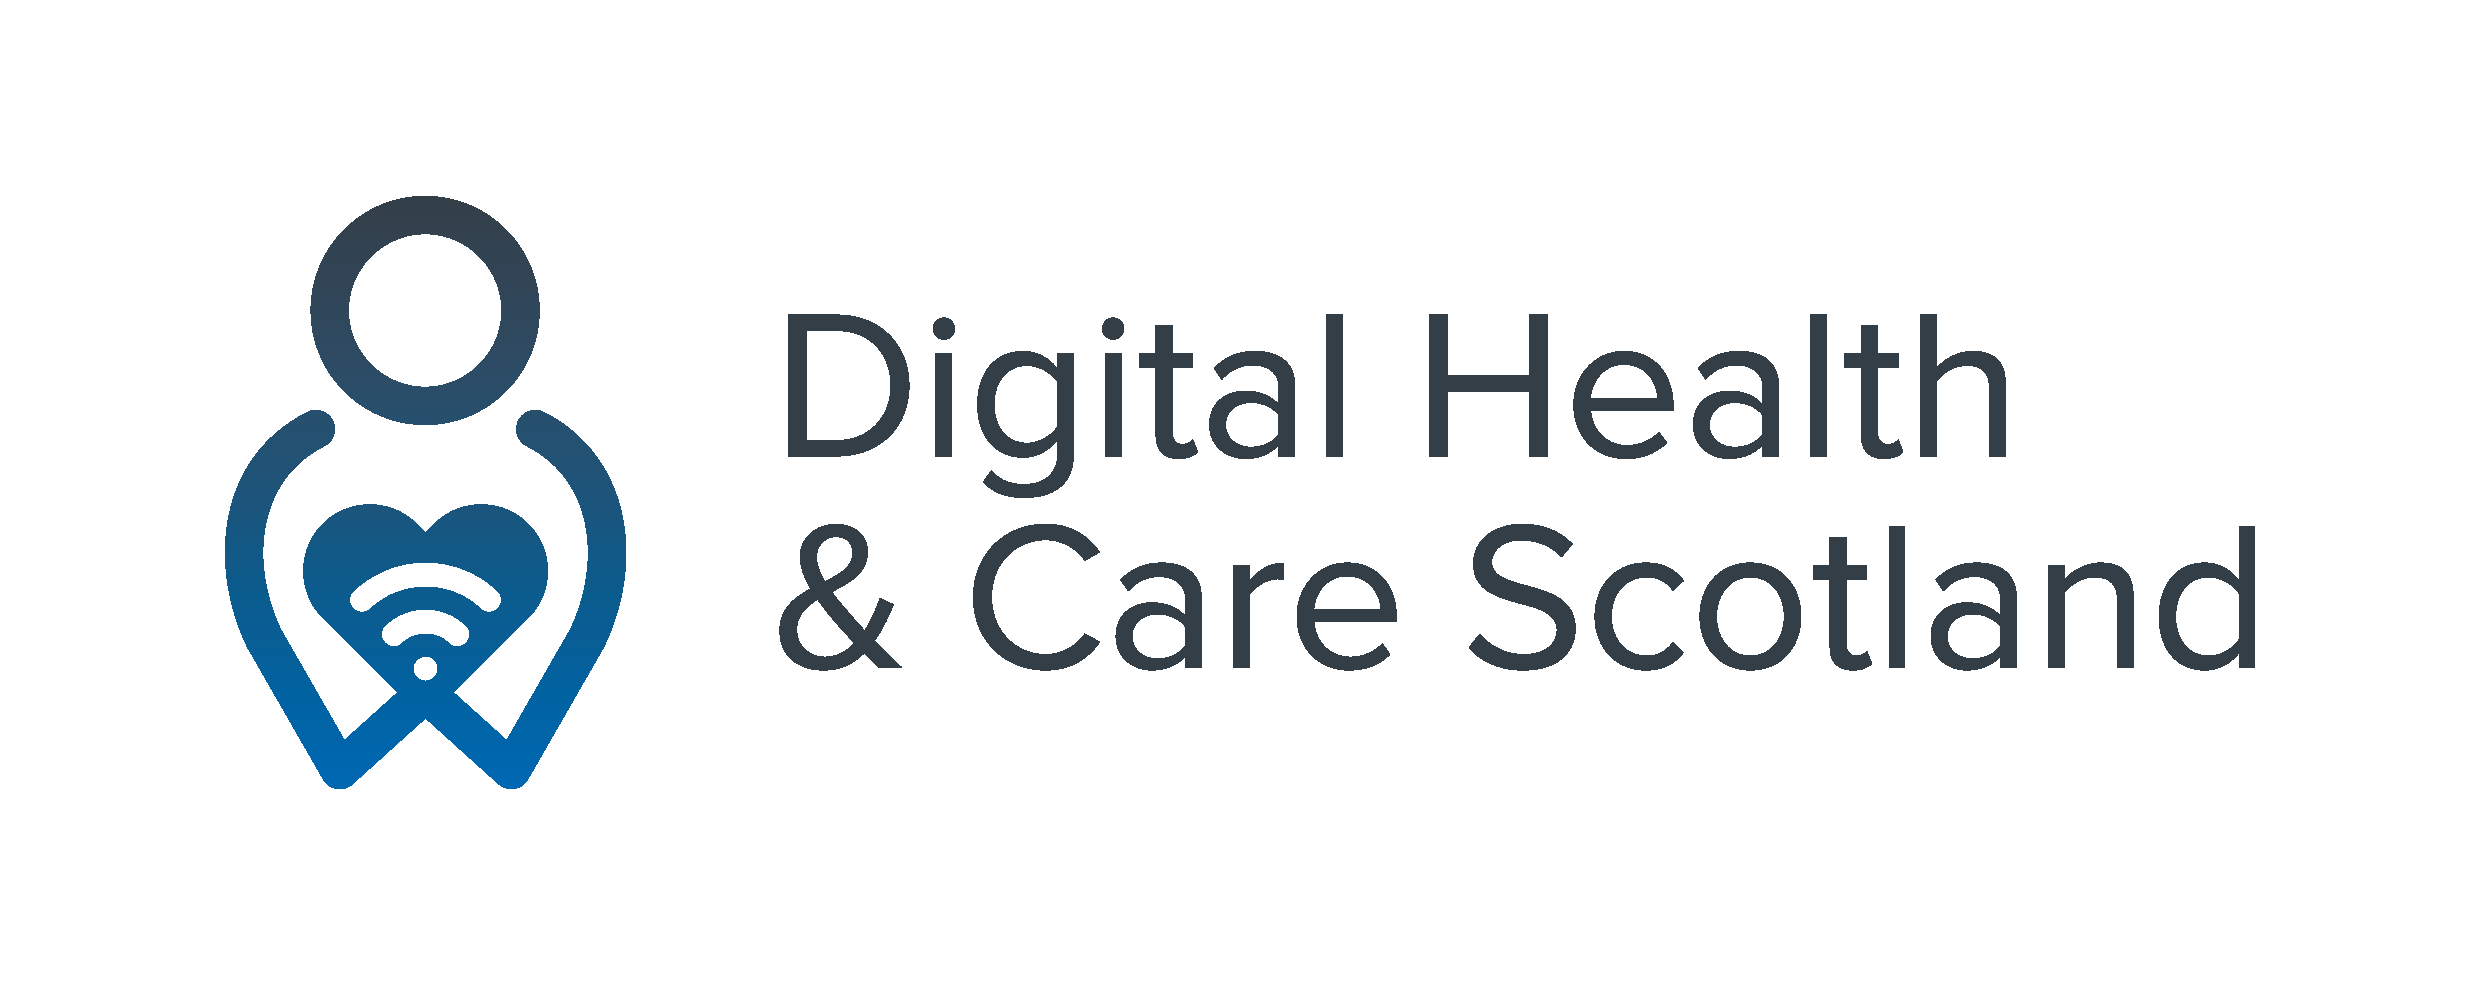 https://www.digihealthcare.scot/home/news-and-events/scotlands-new-digital-health-and-care-strategy-published/